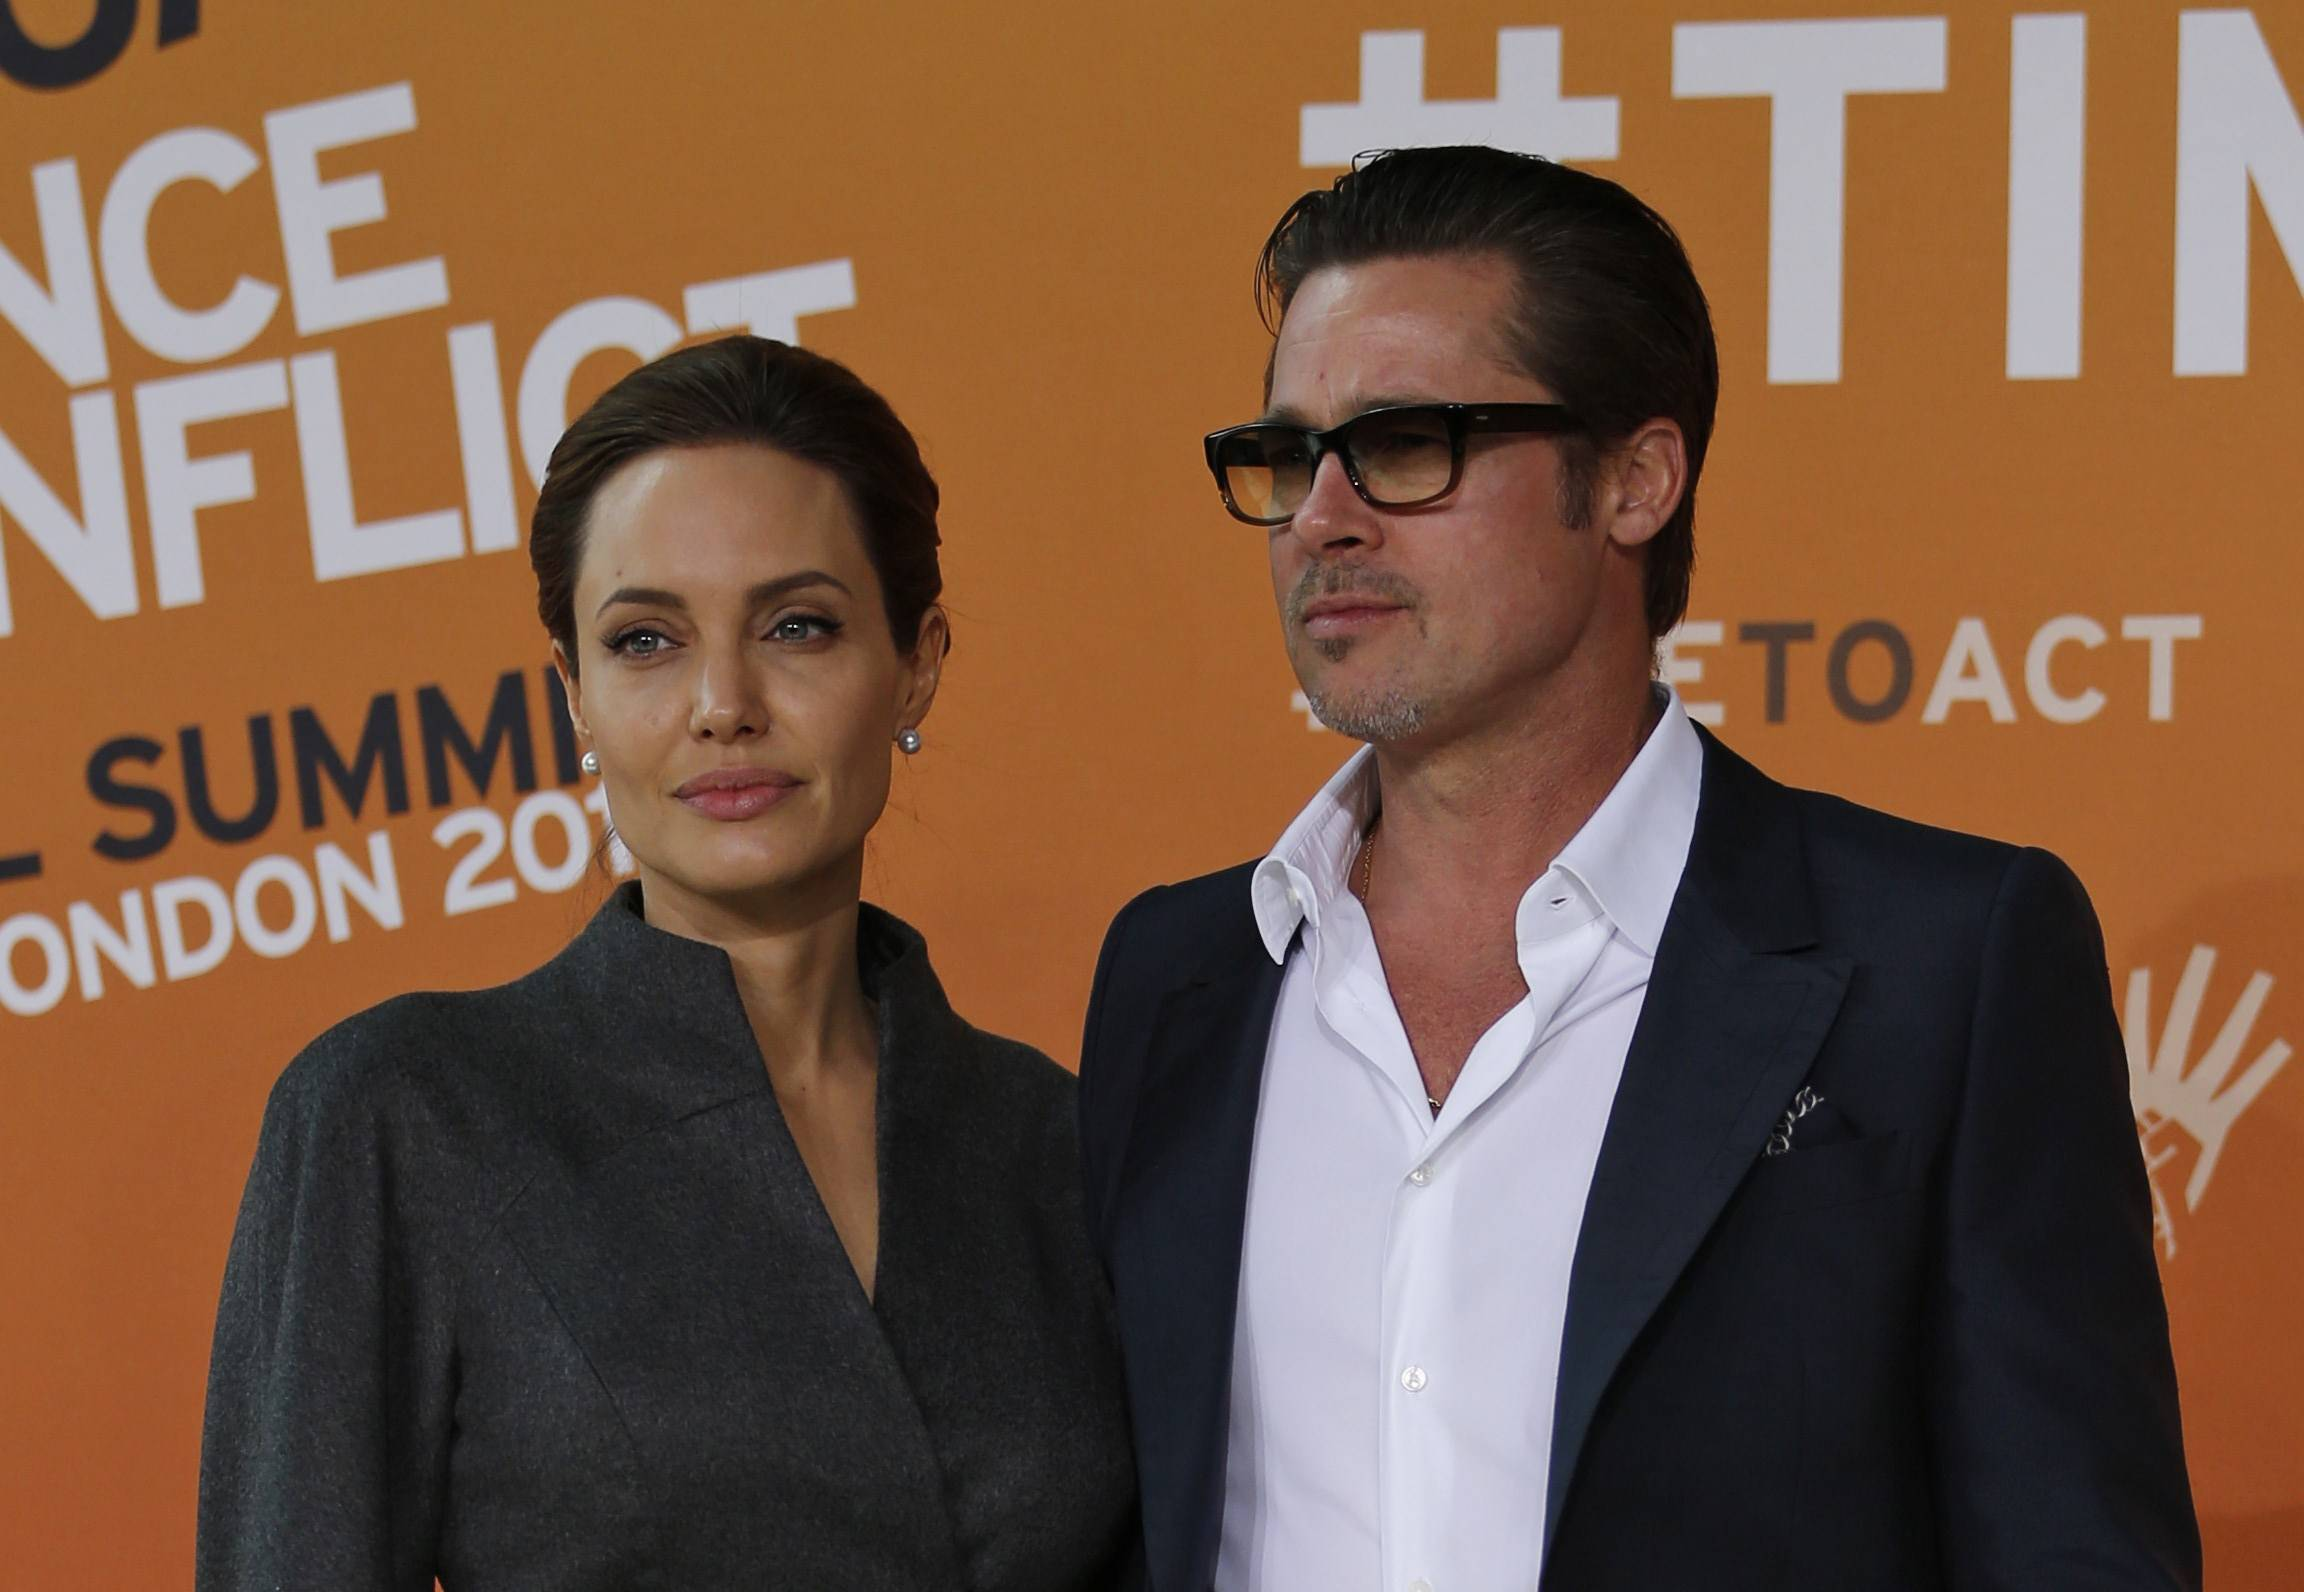 Angelina Jolie and Brad Pitt pose for the photographers as they arrive at the 'End Sexual Violence in Conflict' summit in London, Friday, June 13, 2014. The Summit welcomes governments from over 100 countries, over 900 experts, NGOs, Faith leaders, and representatives from international organizations across the world.